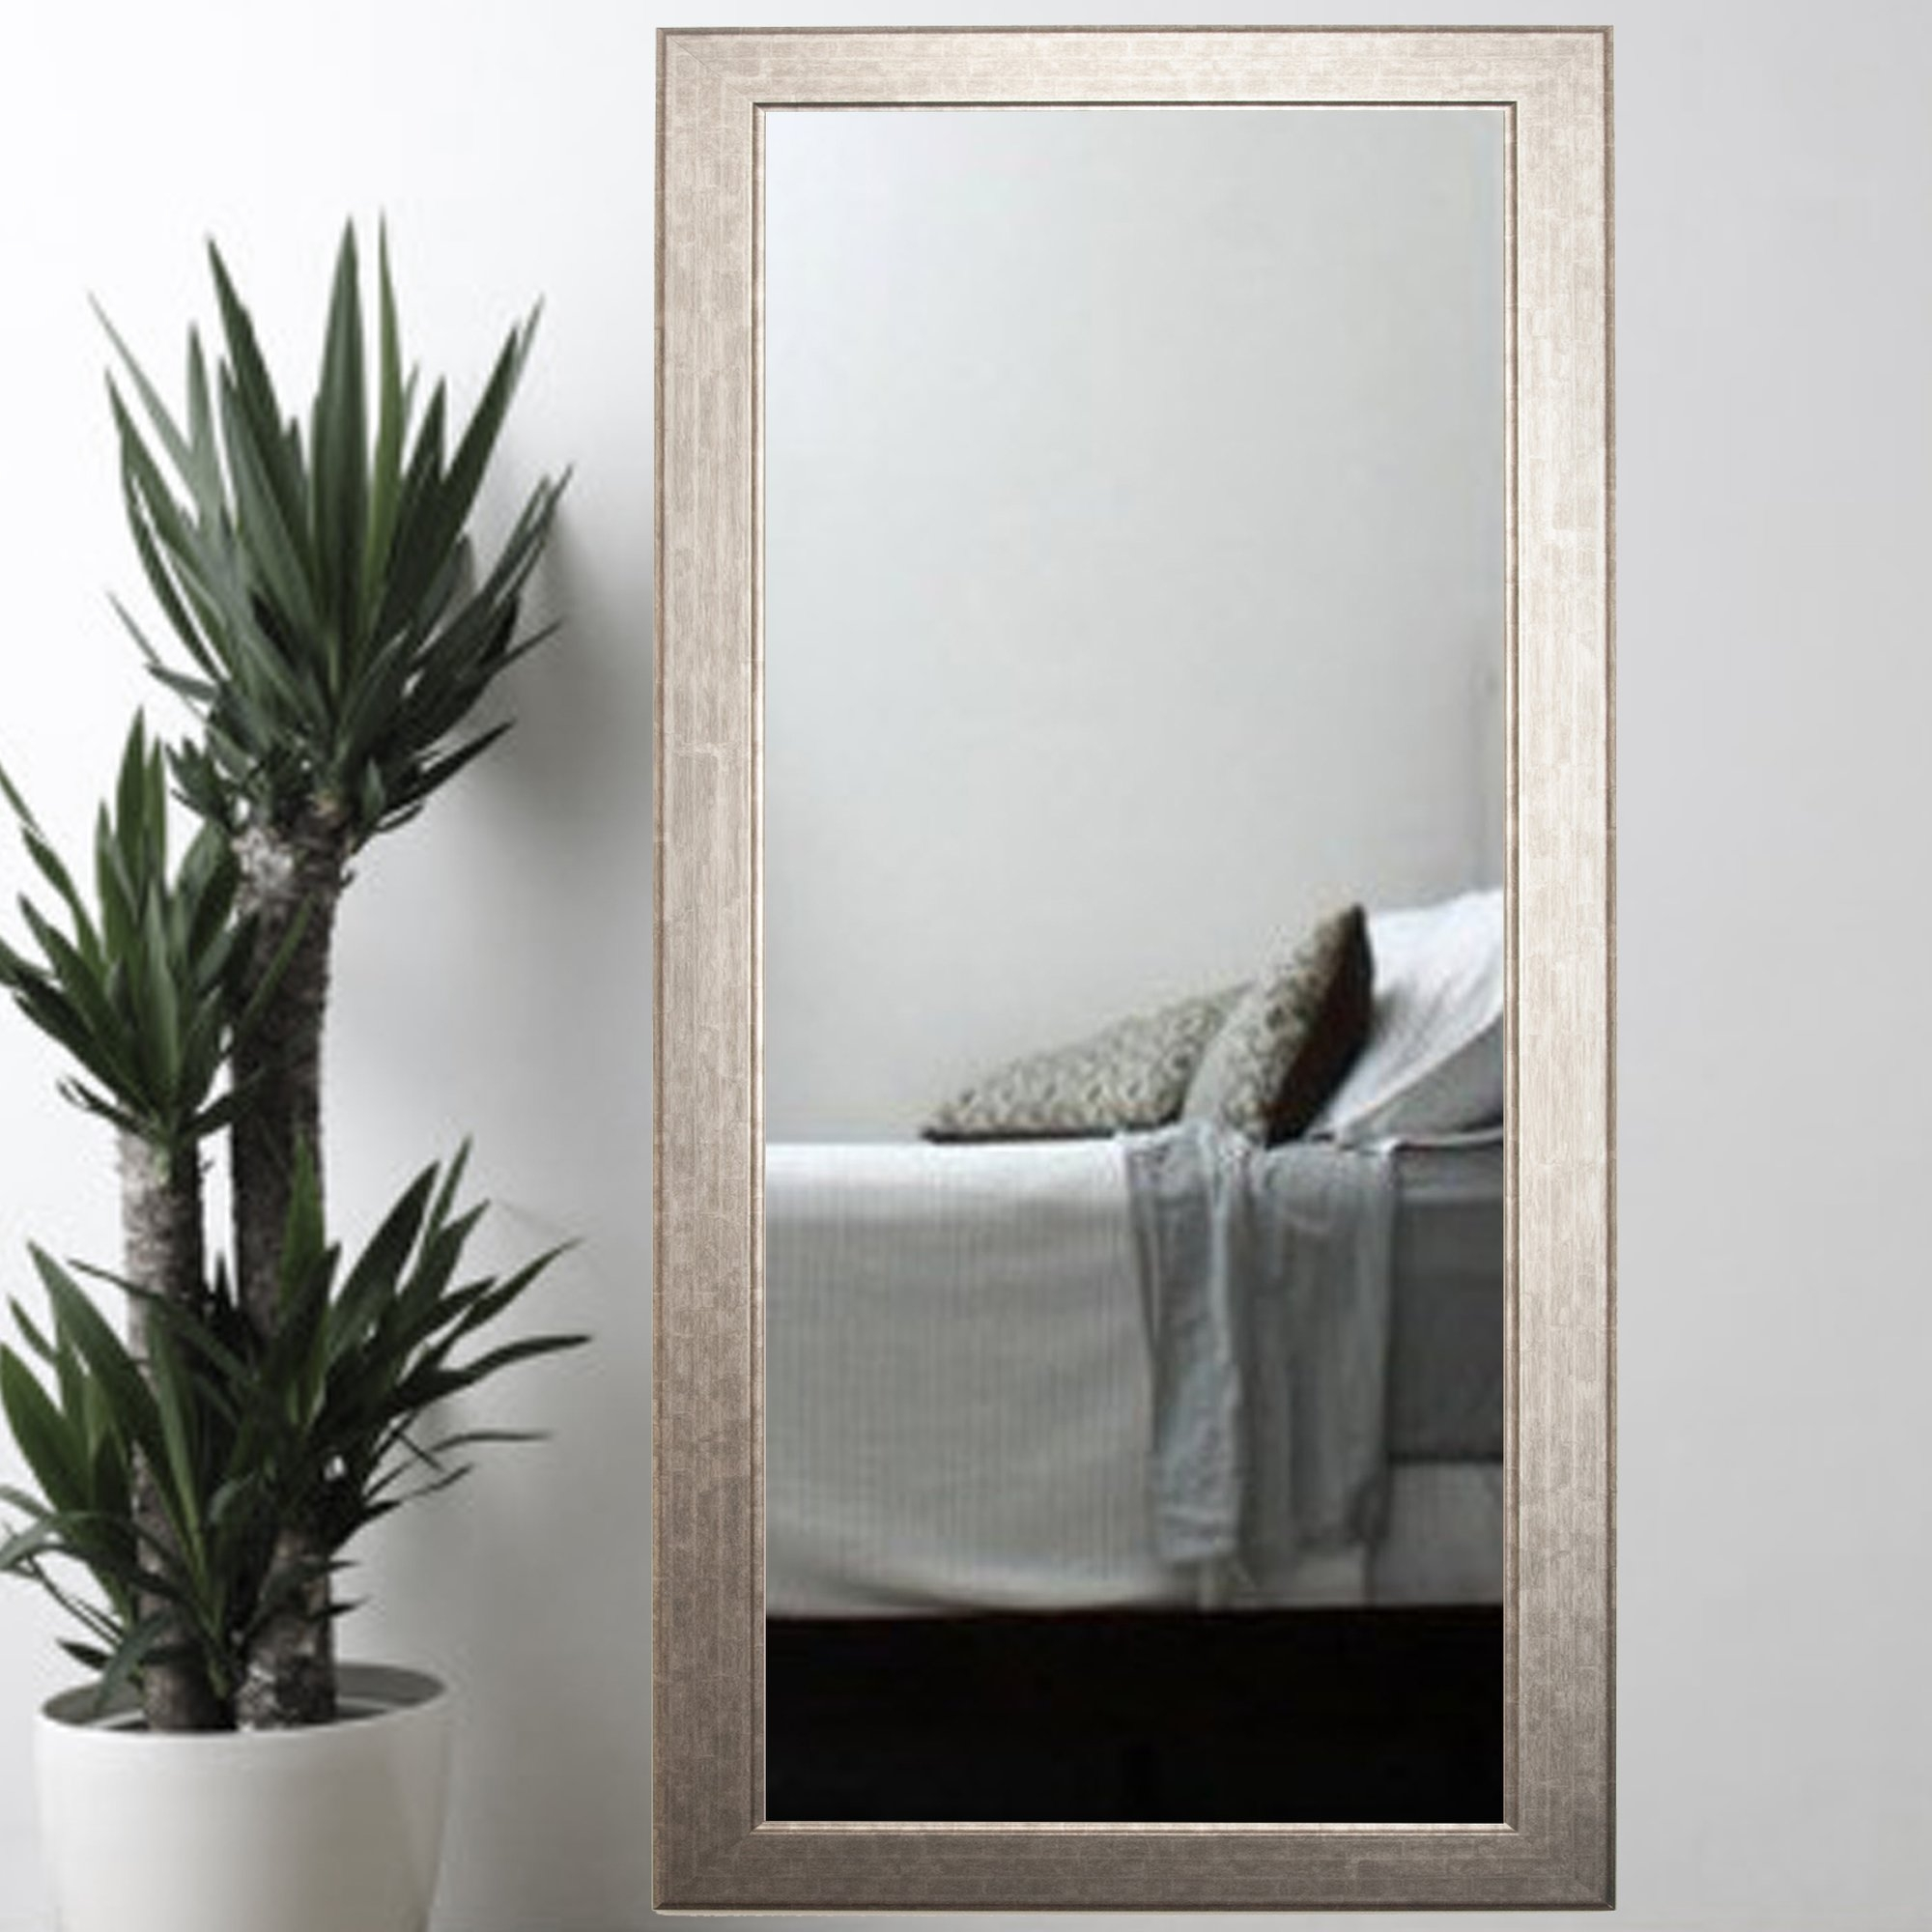 Brandtworksllc Subway Silver Elite Tall Accent Wall Mirror With Regard To Tall Silver Mirror (Image 4 of 15)